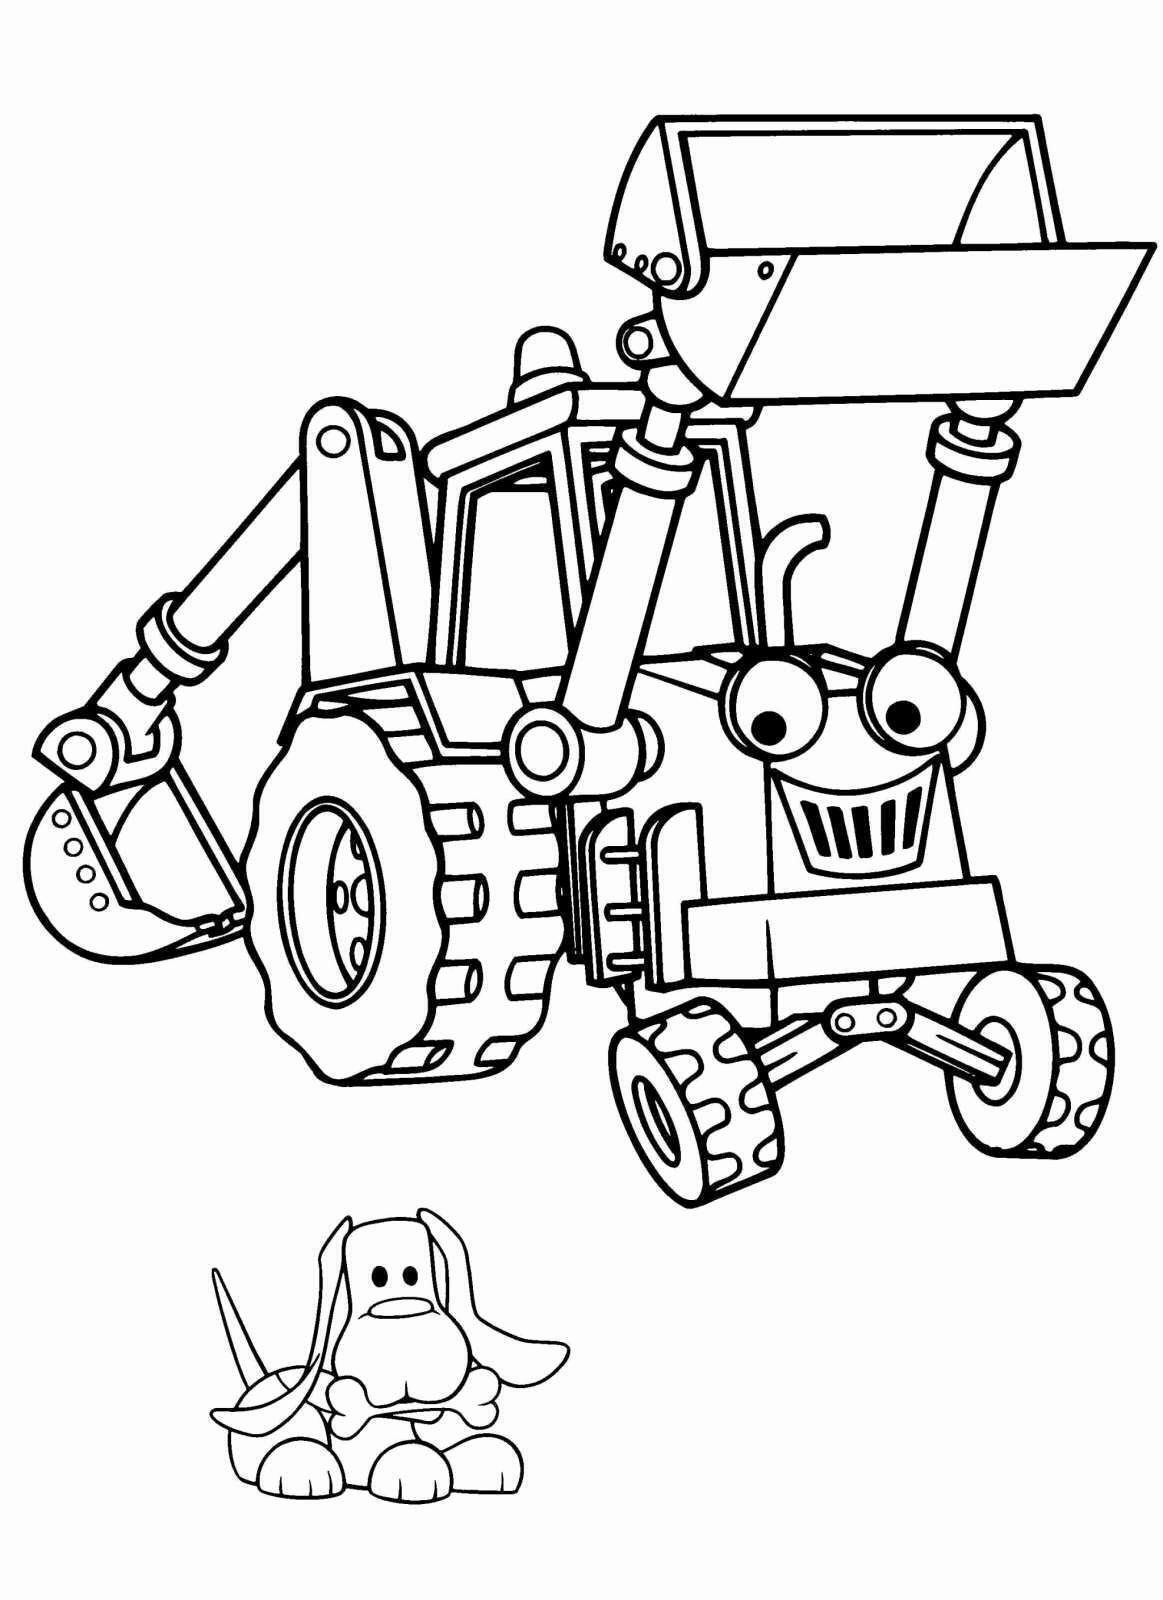 Transport Coloring Book Pdf Luxury Coloring Games Datagroupub Coloring Pages Cartoon Coloring Pages Coloring Books